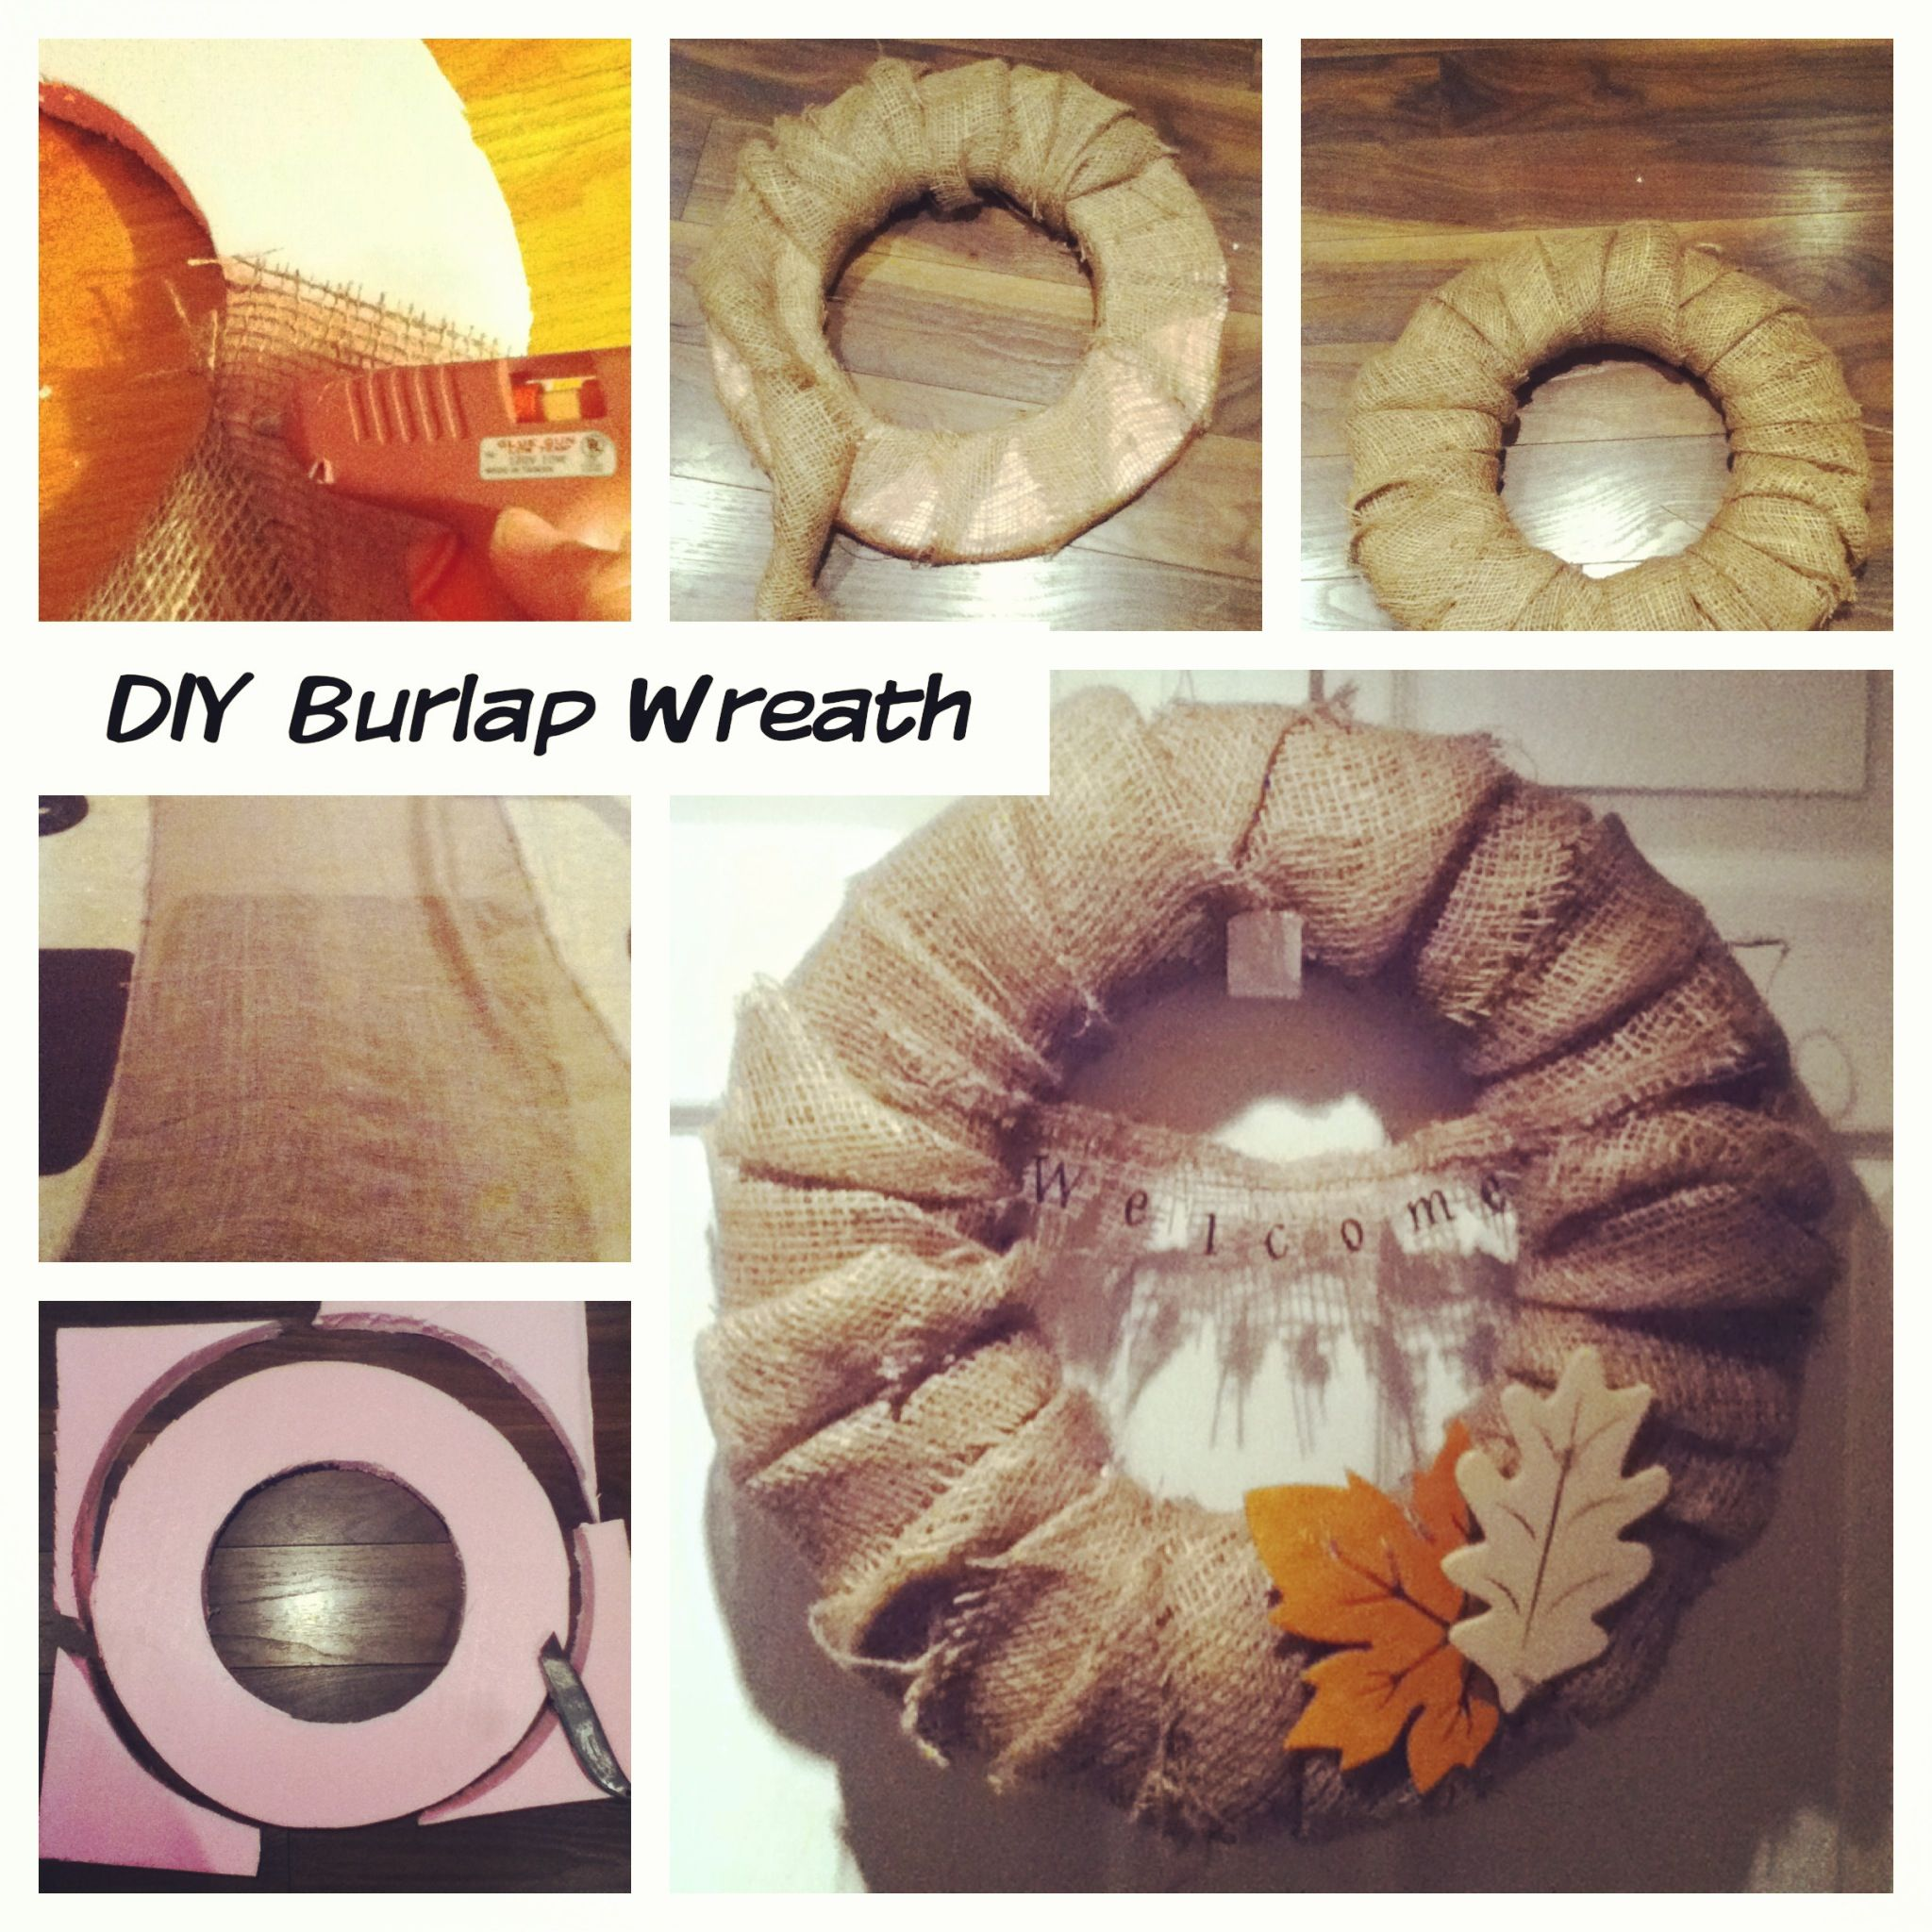 Burlap wreath diy crafts projects i d like to try pinterest